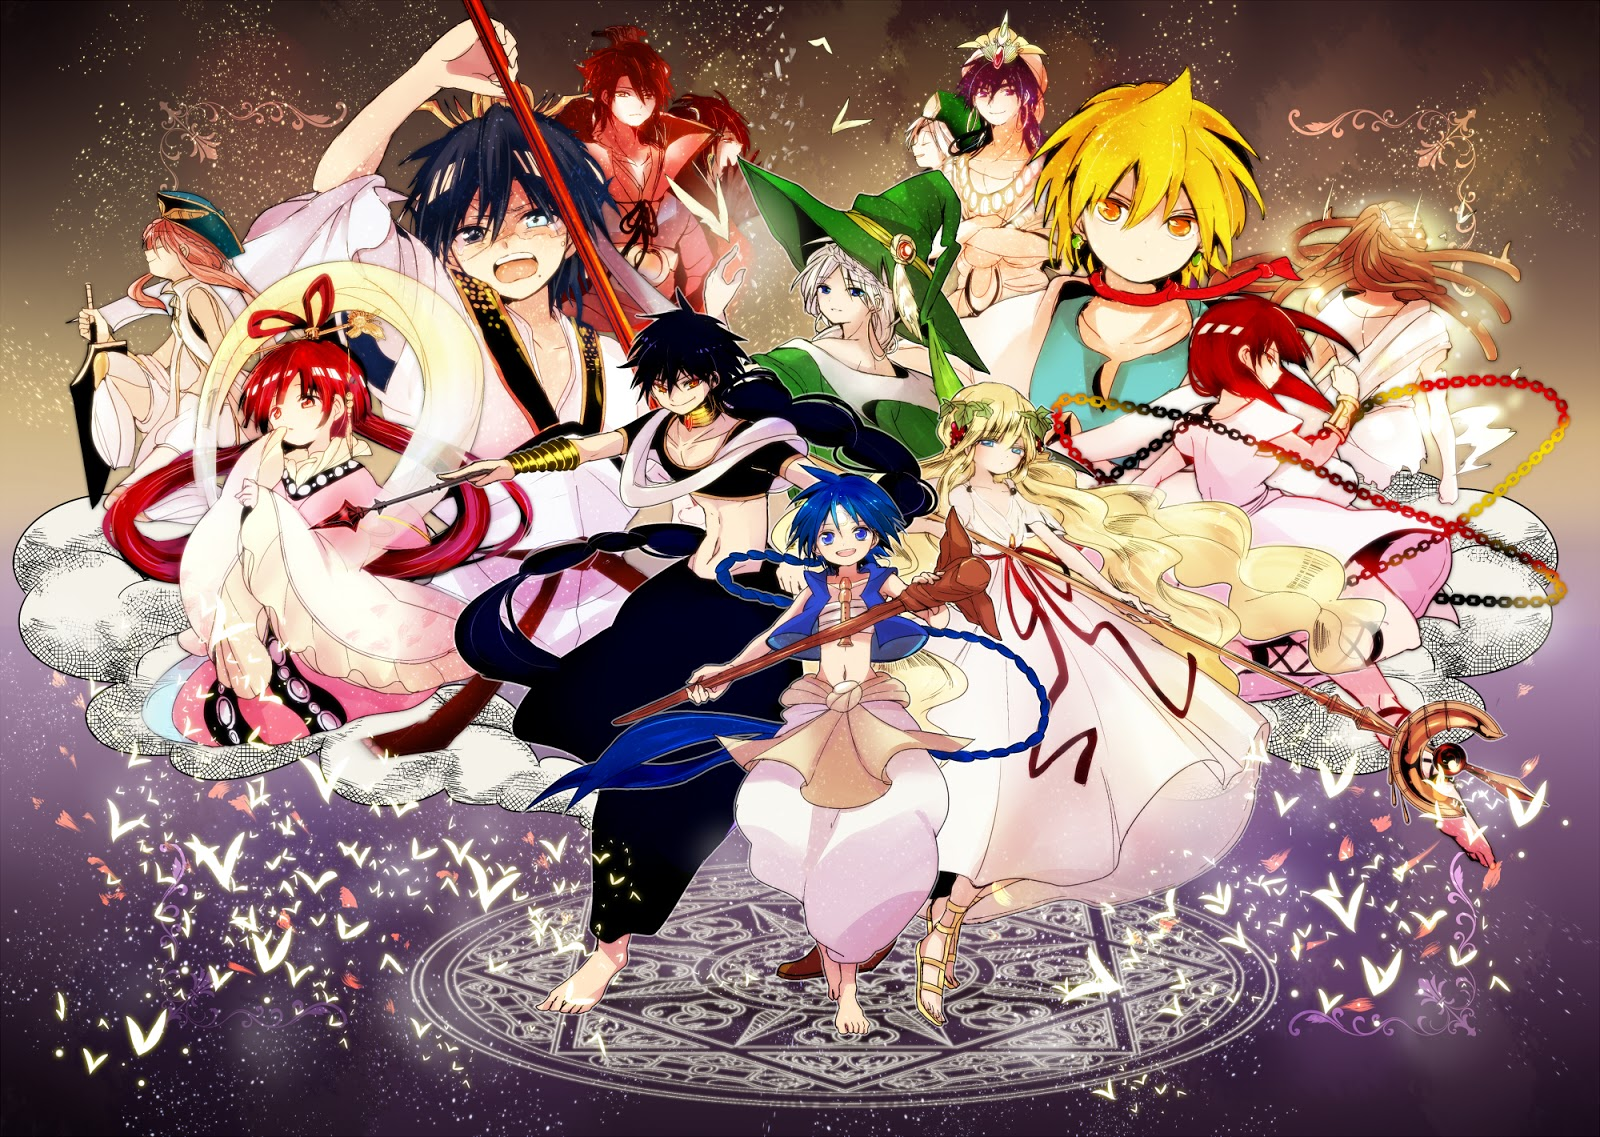 Wallpaper Magi: The Labyrinth of Magic